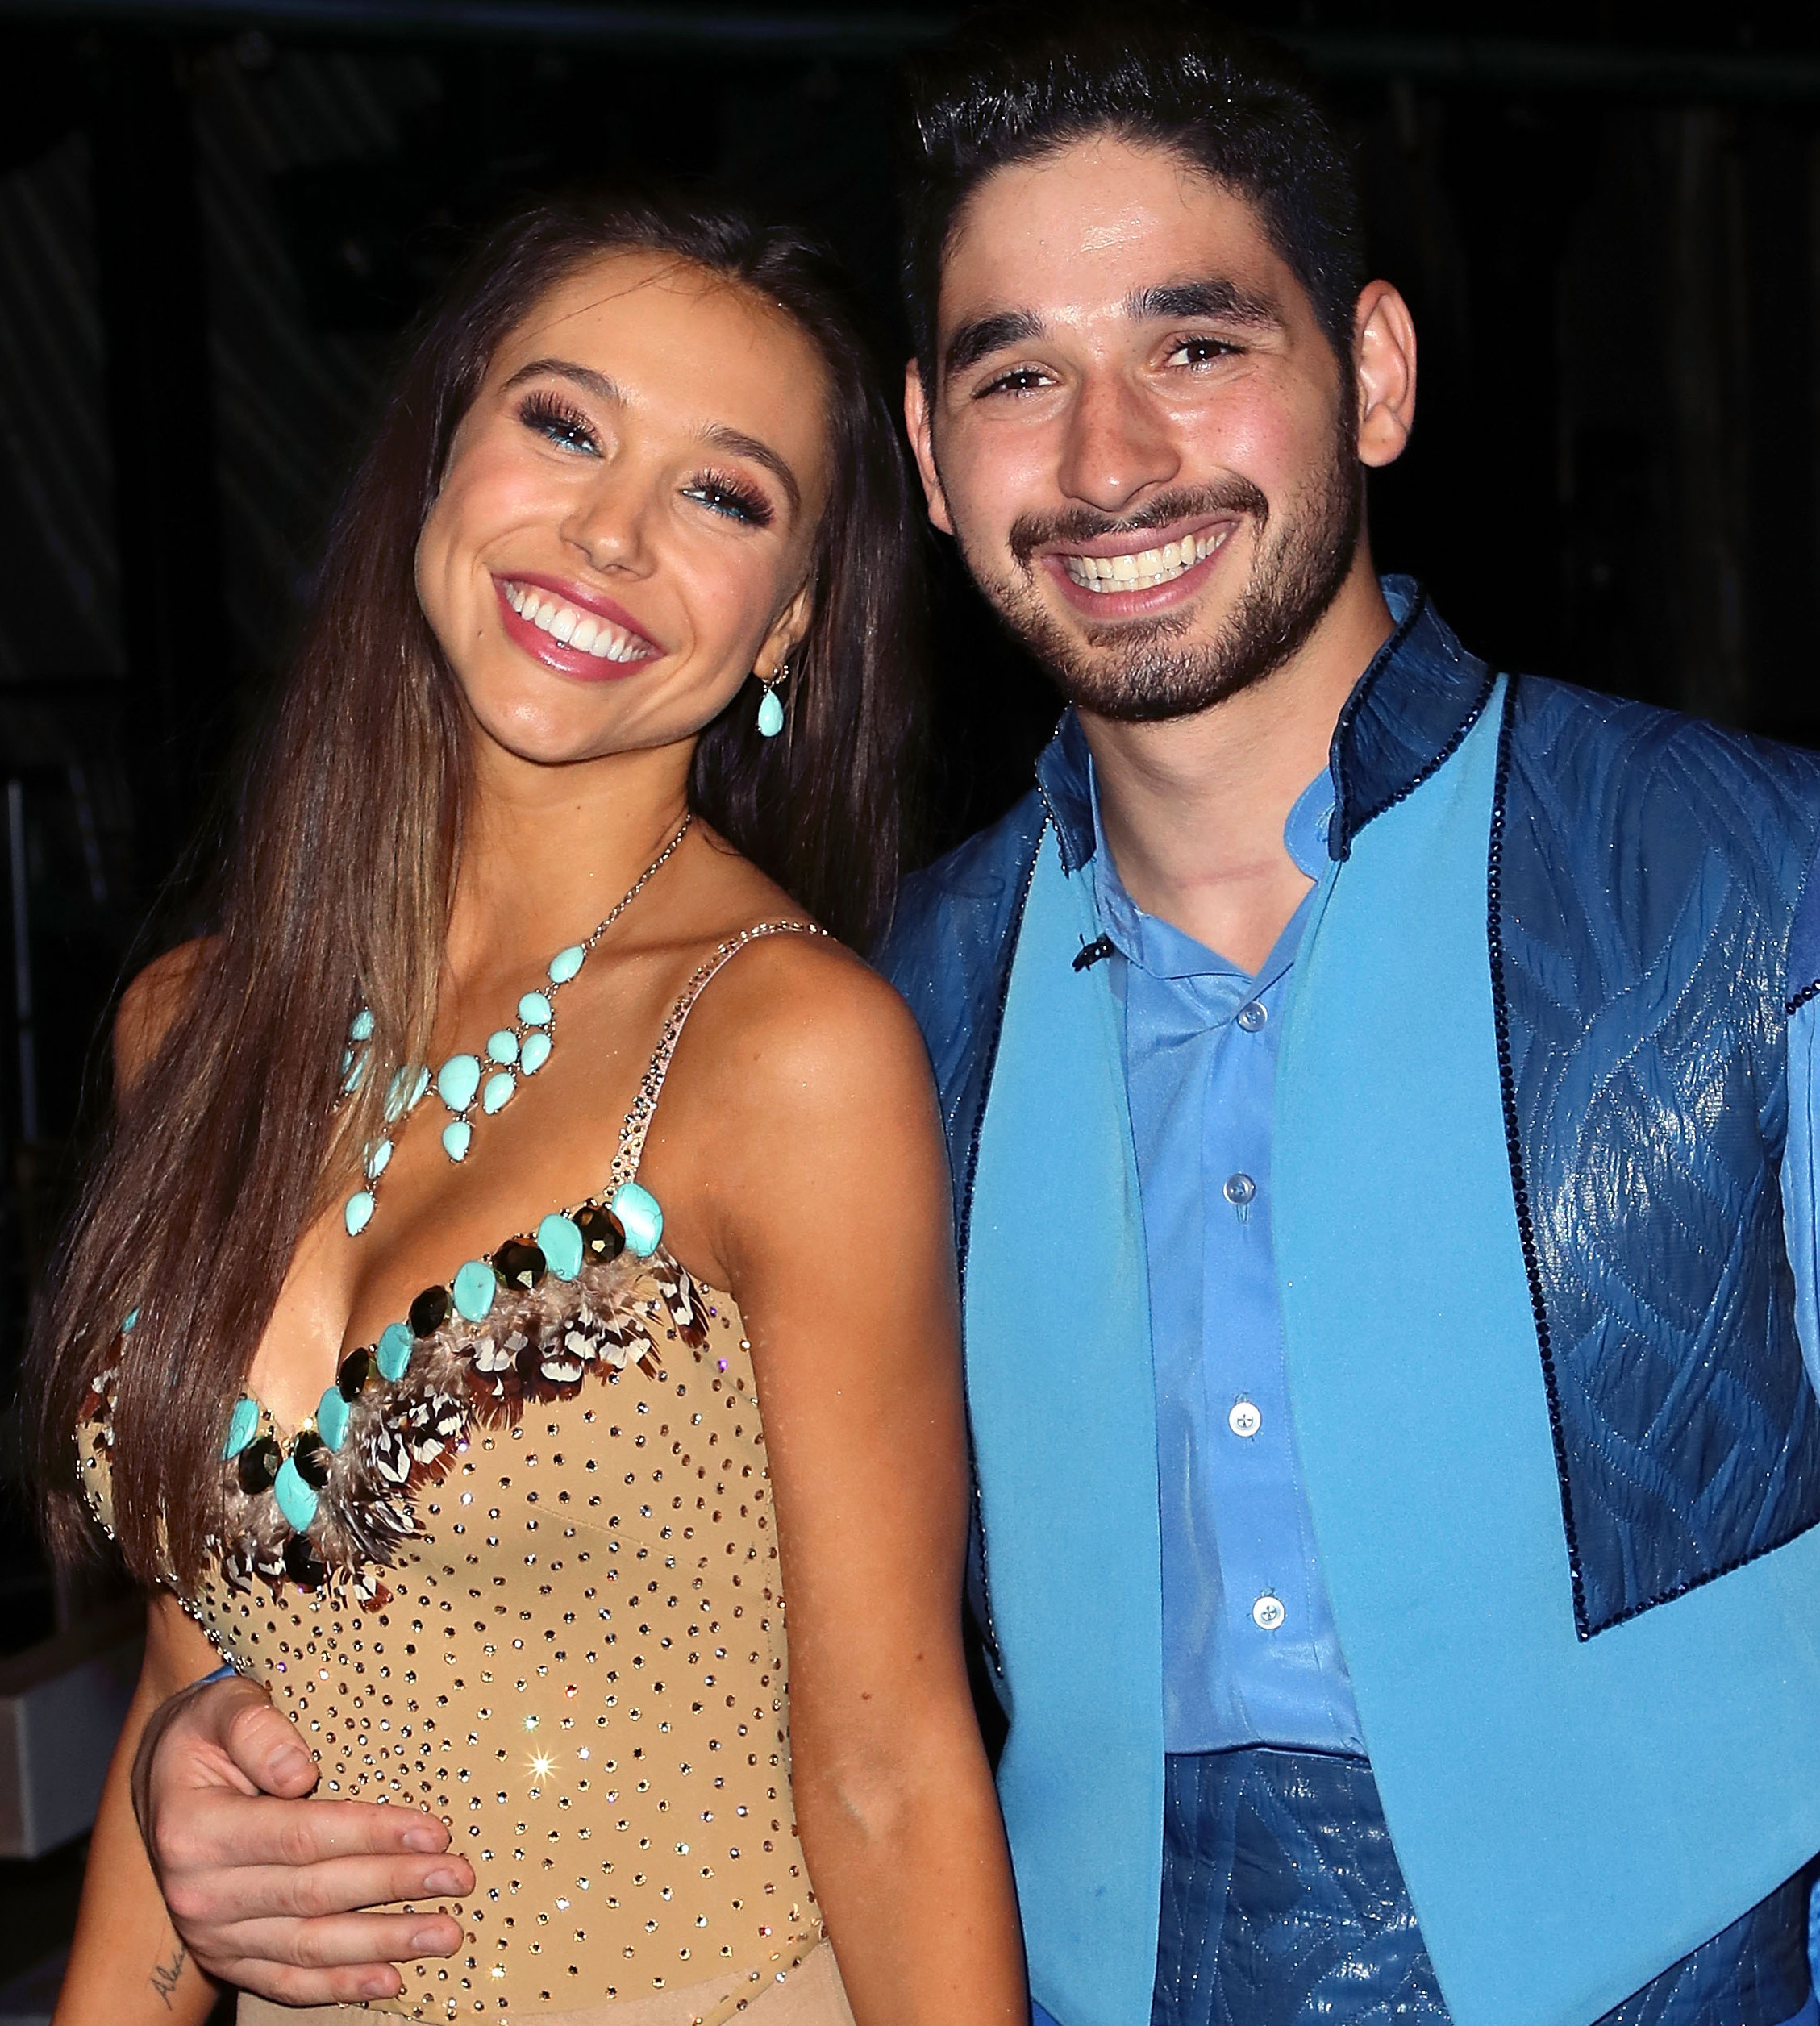 Dwts dating couple